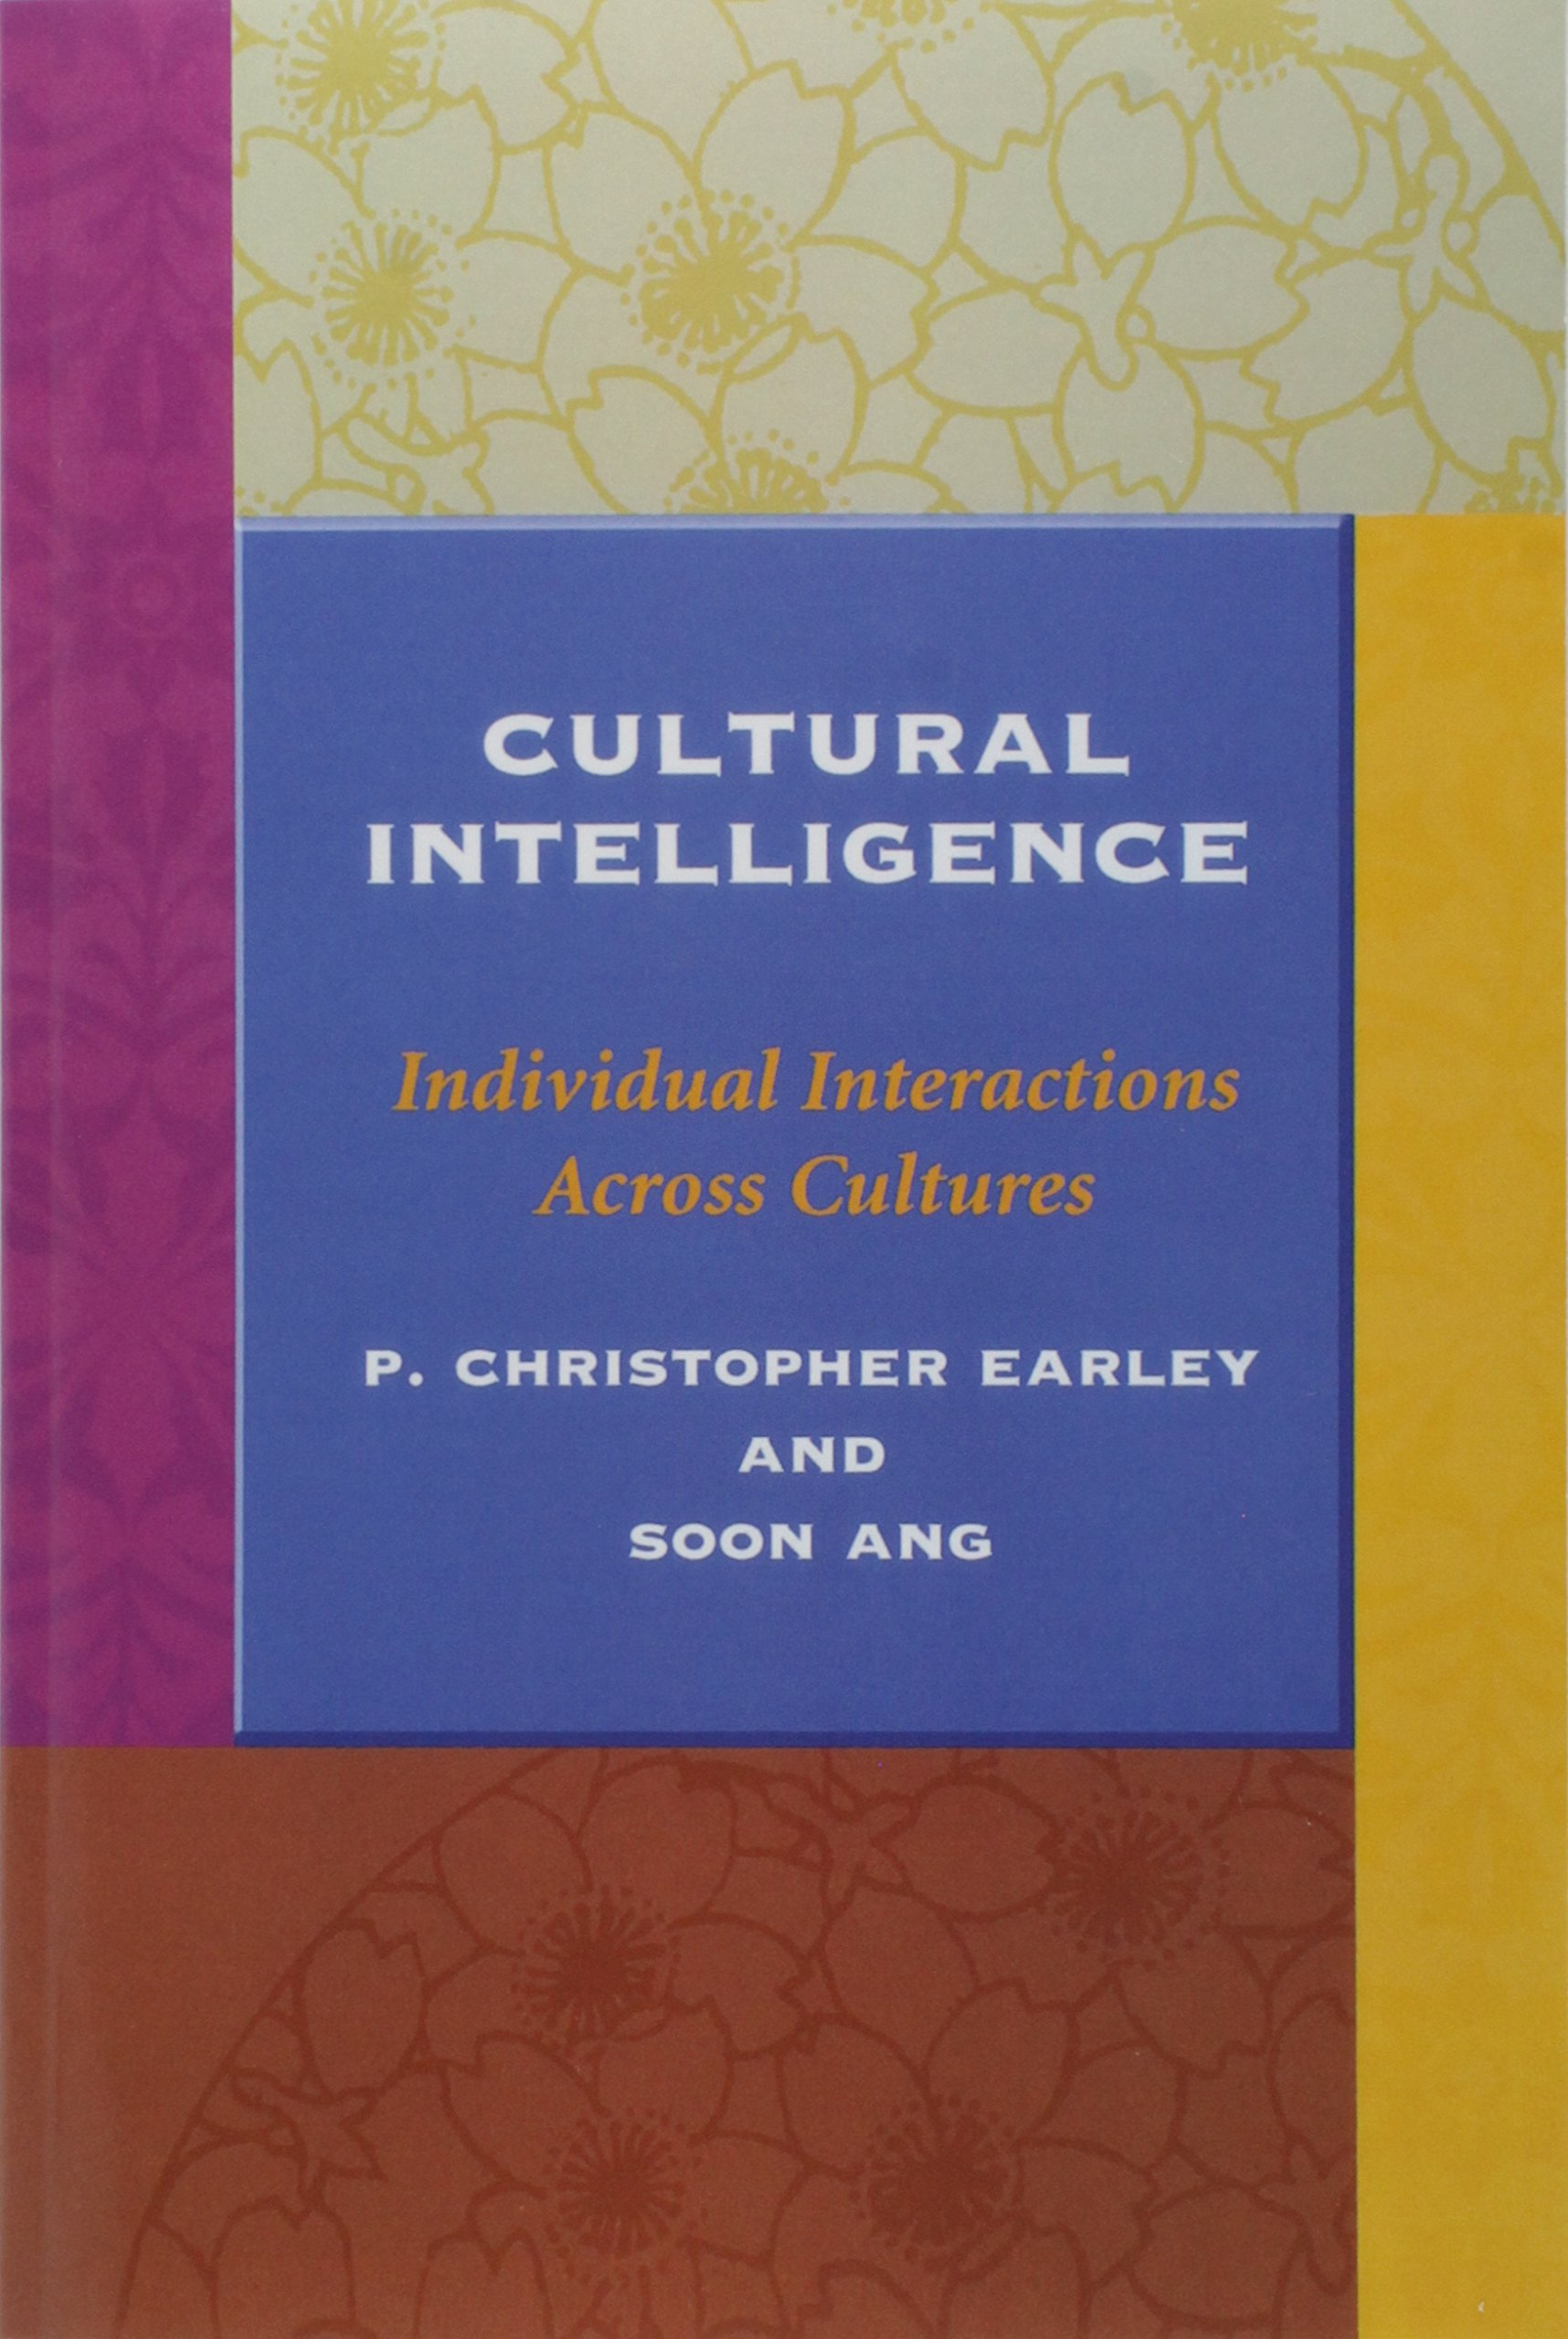 Cultural Intelligence: Individual Interactions Across Cultures (Anglais) Broché – 15 juillet 2003 P. Christopher Earley Soon Ang Stanford University Press 0804743126